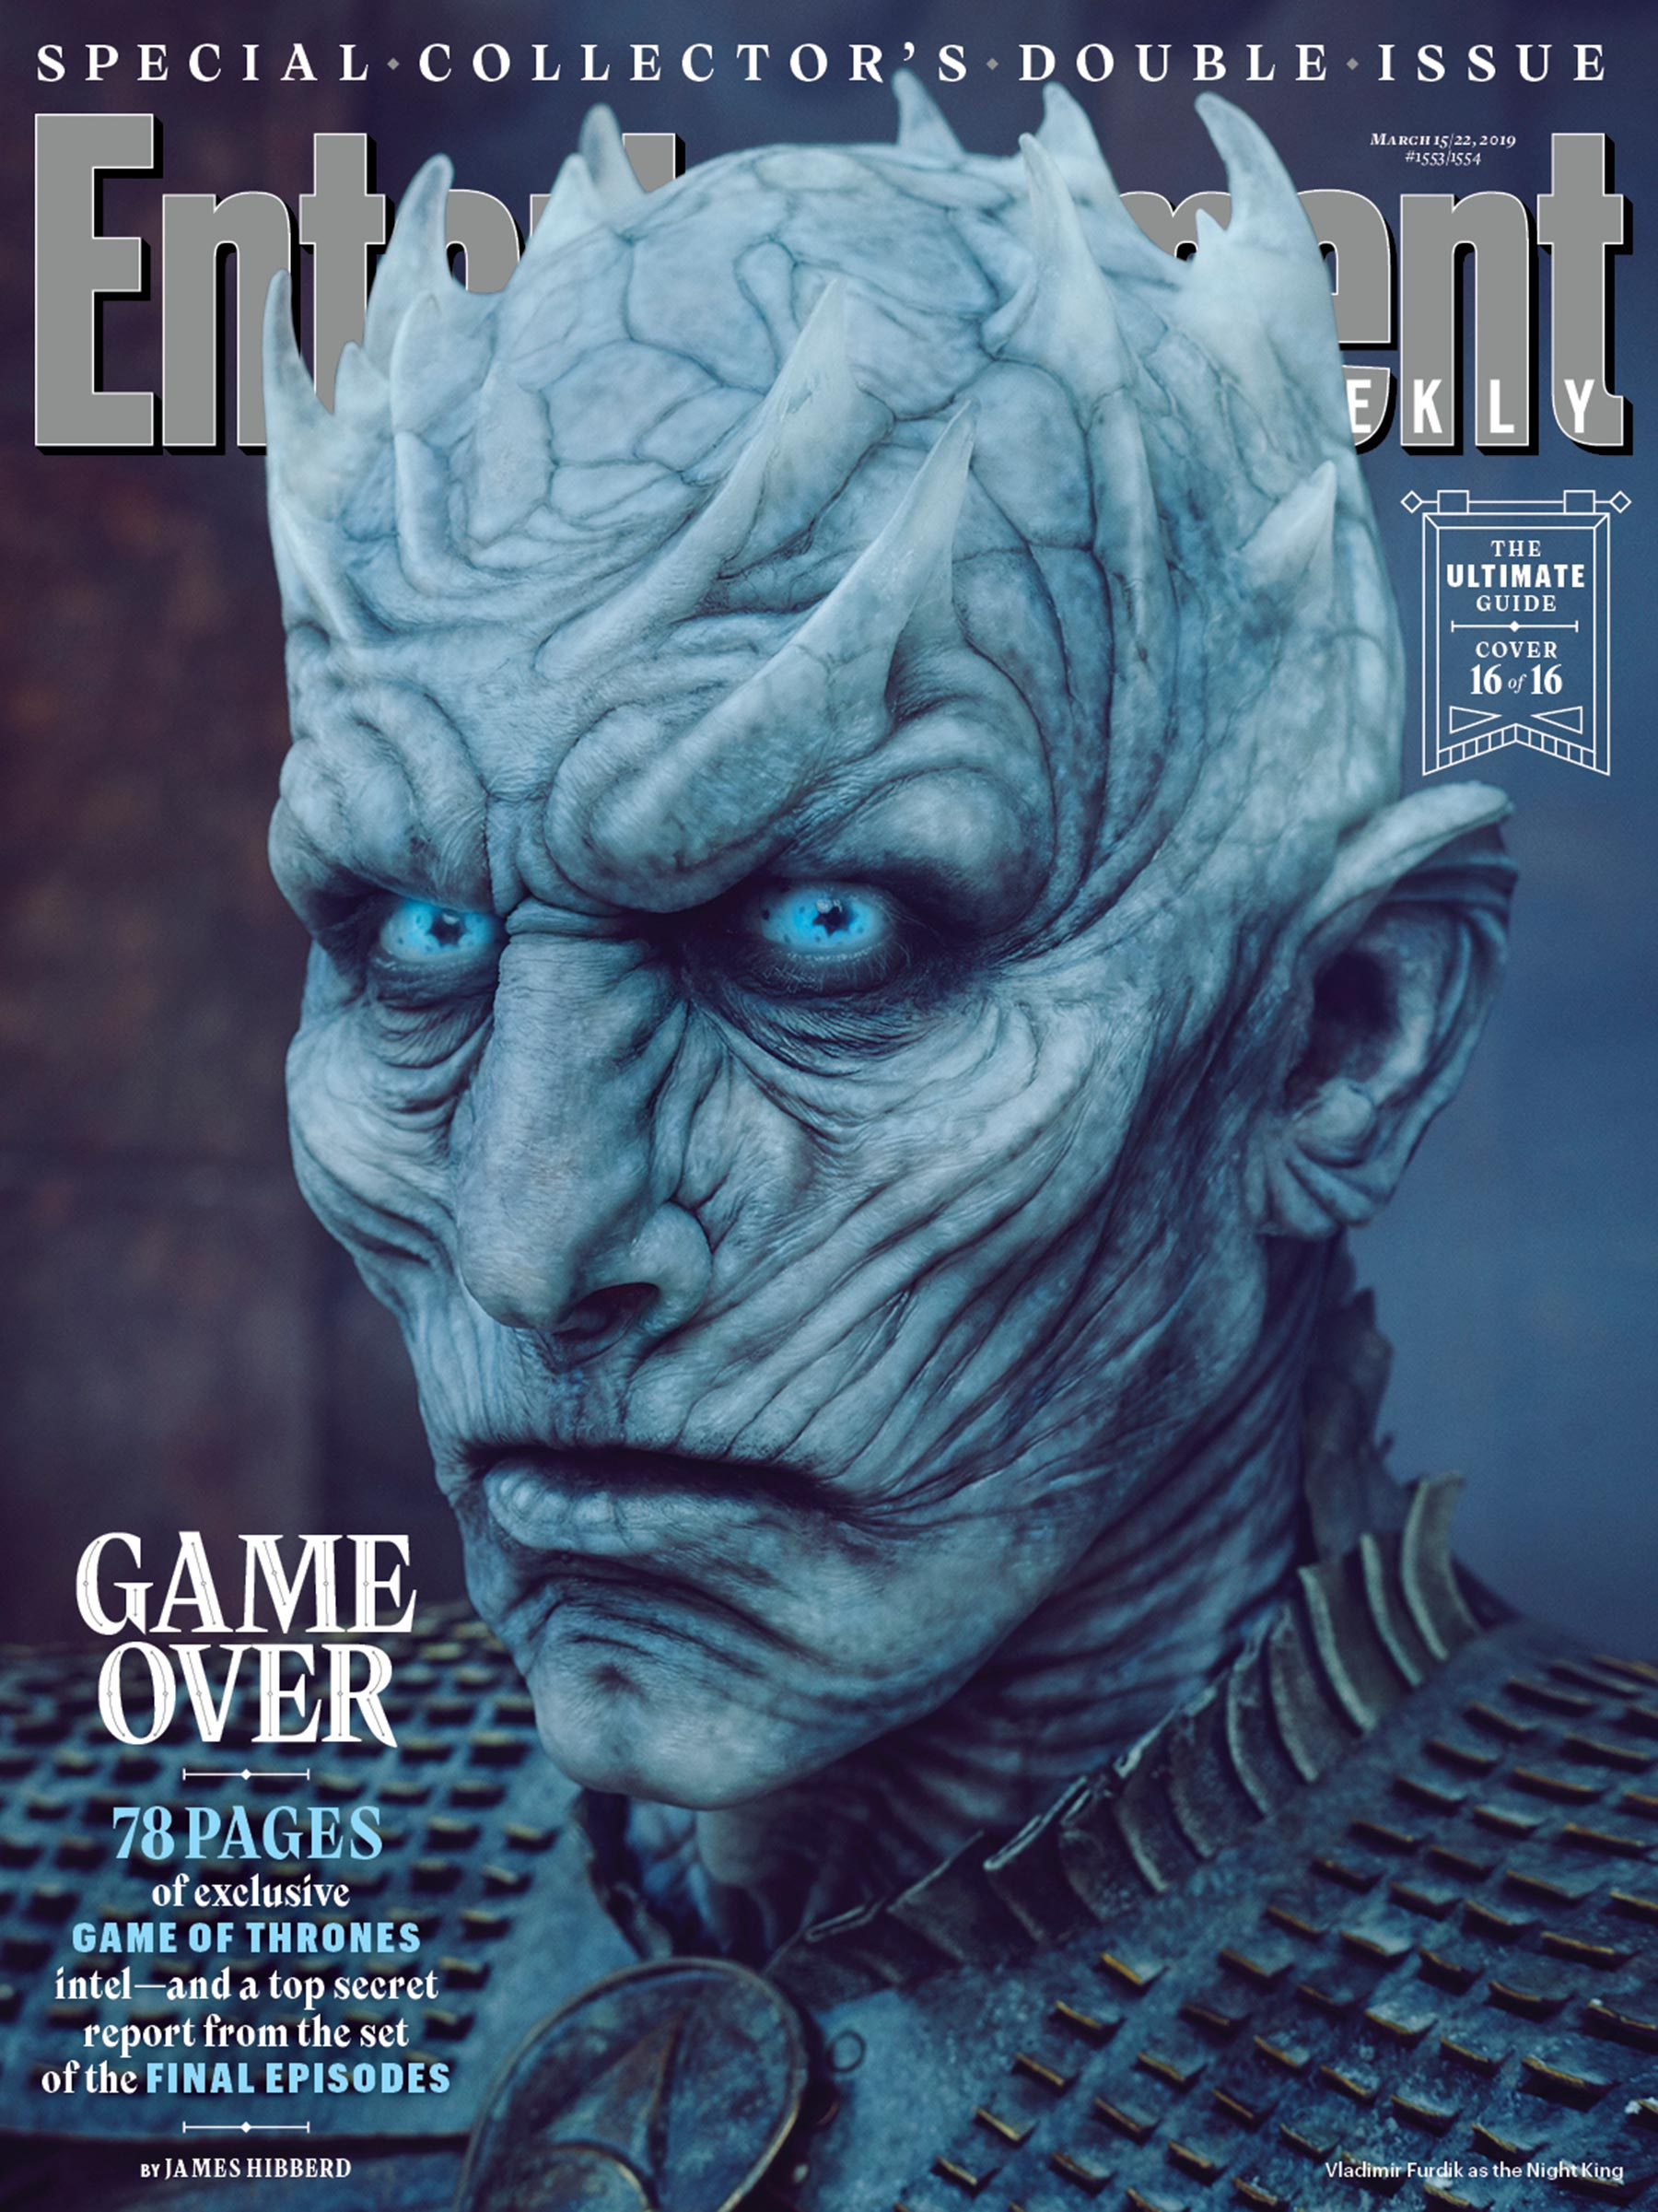 Winter is Coming - Game of Thrones. - Página 8 Game-of-Thrones-Season-8-Official-Images-Entertainment-Weekly-Covers-16